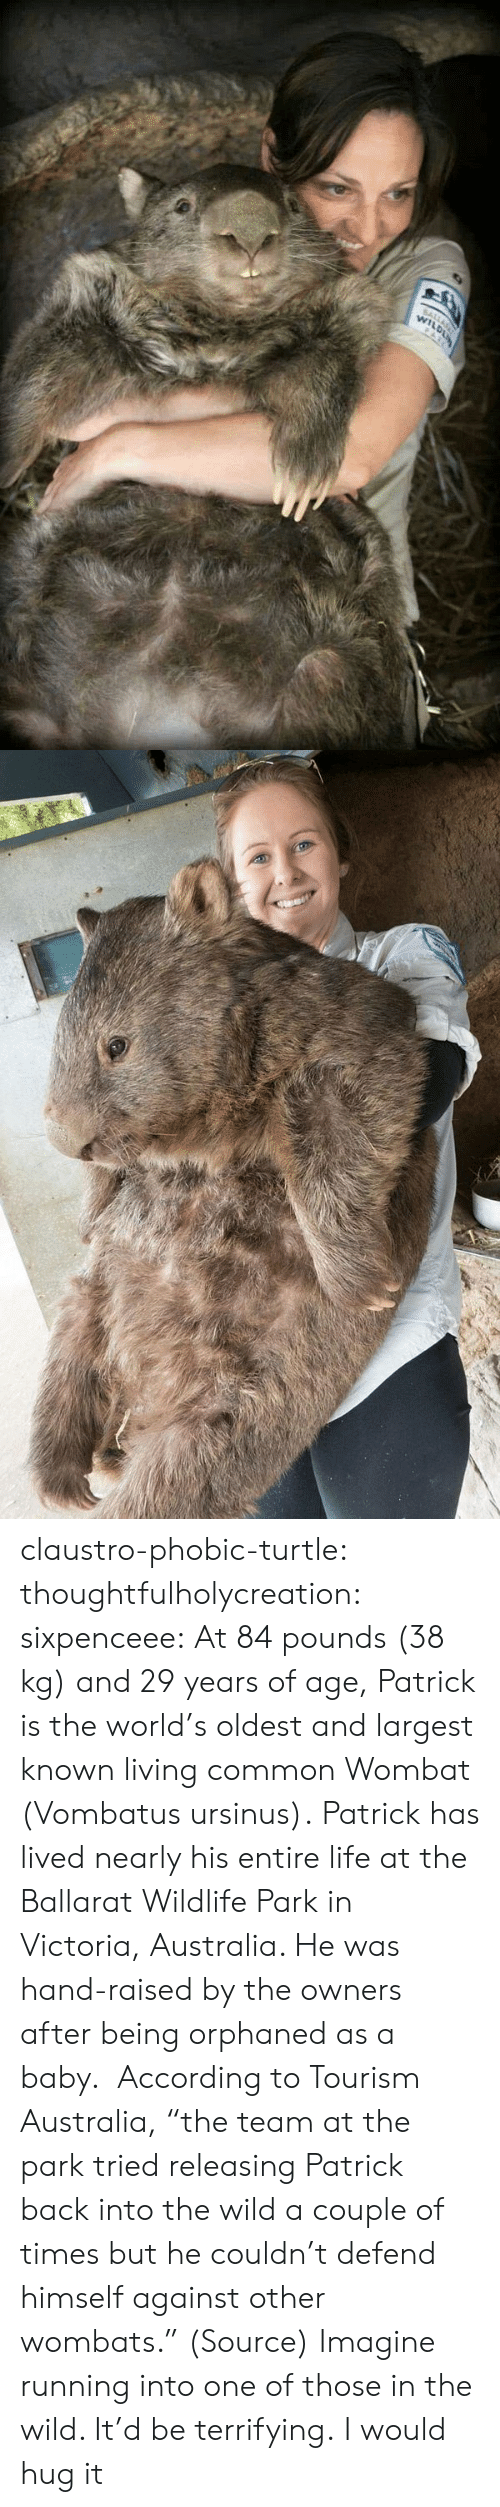 """Life, Tumblr, and Australia: claustro-phobic-turtle:  thoughtfulholycreation:  sixpenceee:   At 84 pounds (38 kg) and 29 years of age, Patrick is the world's oldest and largest known living common Wombat (Vombatus ursinus).Patrick has lived nearly his entire life at the Ballarat Wildlife Park in Victoria, Australia. He was hand-raised by the owners after being orphaned as a baby. According to Tourism Australia, """"the team at the park tried releasing Patrick back into the wild a couple of times but he couldn't defend himself against other wombats."""" (Source)   Imagine running into one of those in the wild. It'd be terrifying.   I would hug it"""